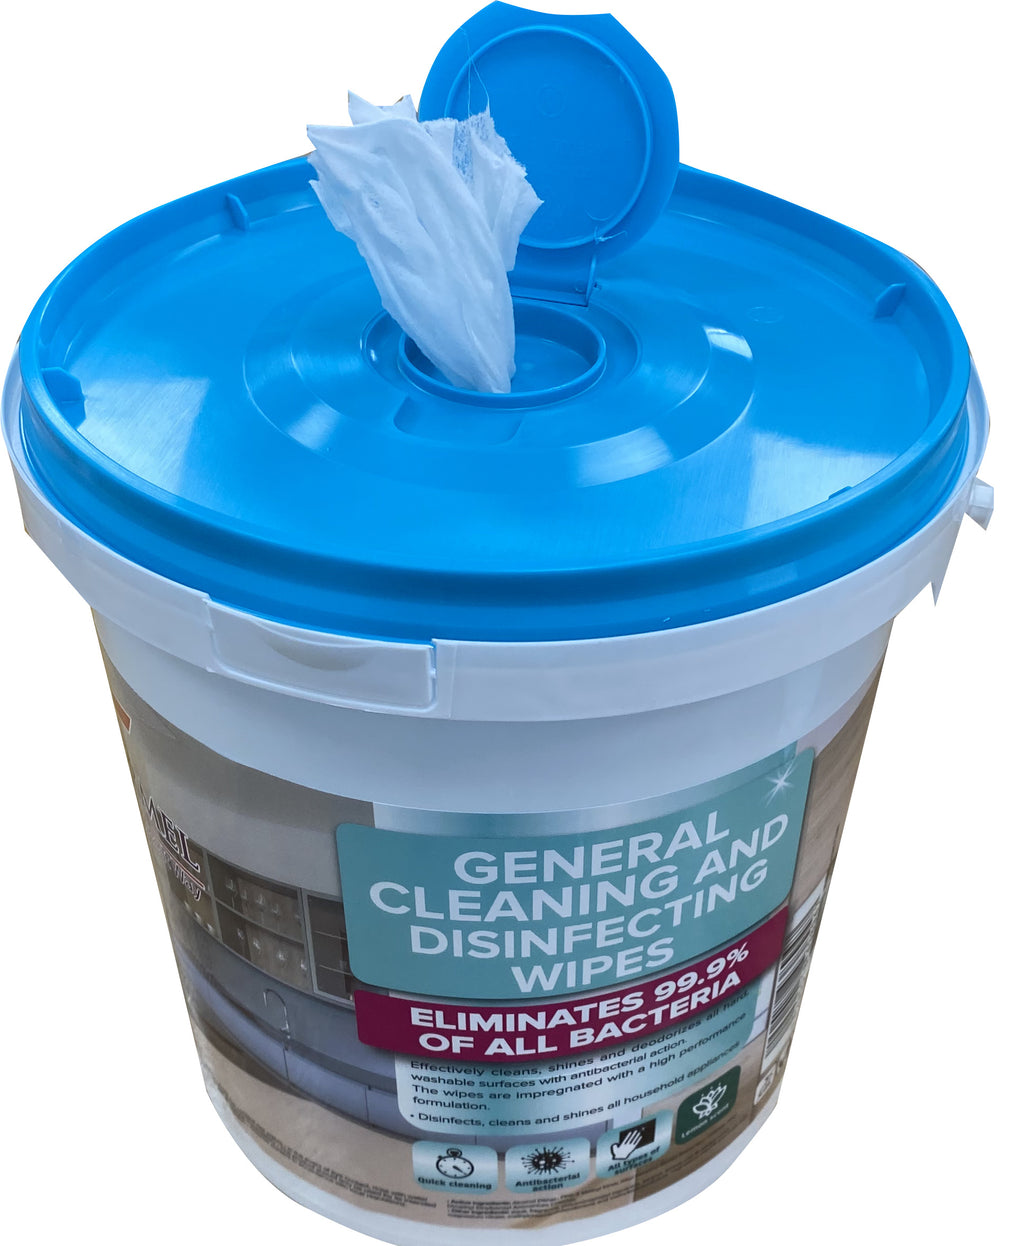 84,000 Disinfecting Wipes - 1 Palette of 210 Buckets of 400 Vega/Carmel Wipes - $11.50/bucket - Made in Israel - Brooklyn Equipment